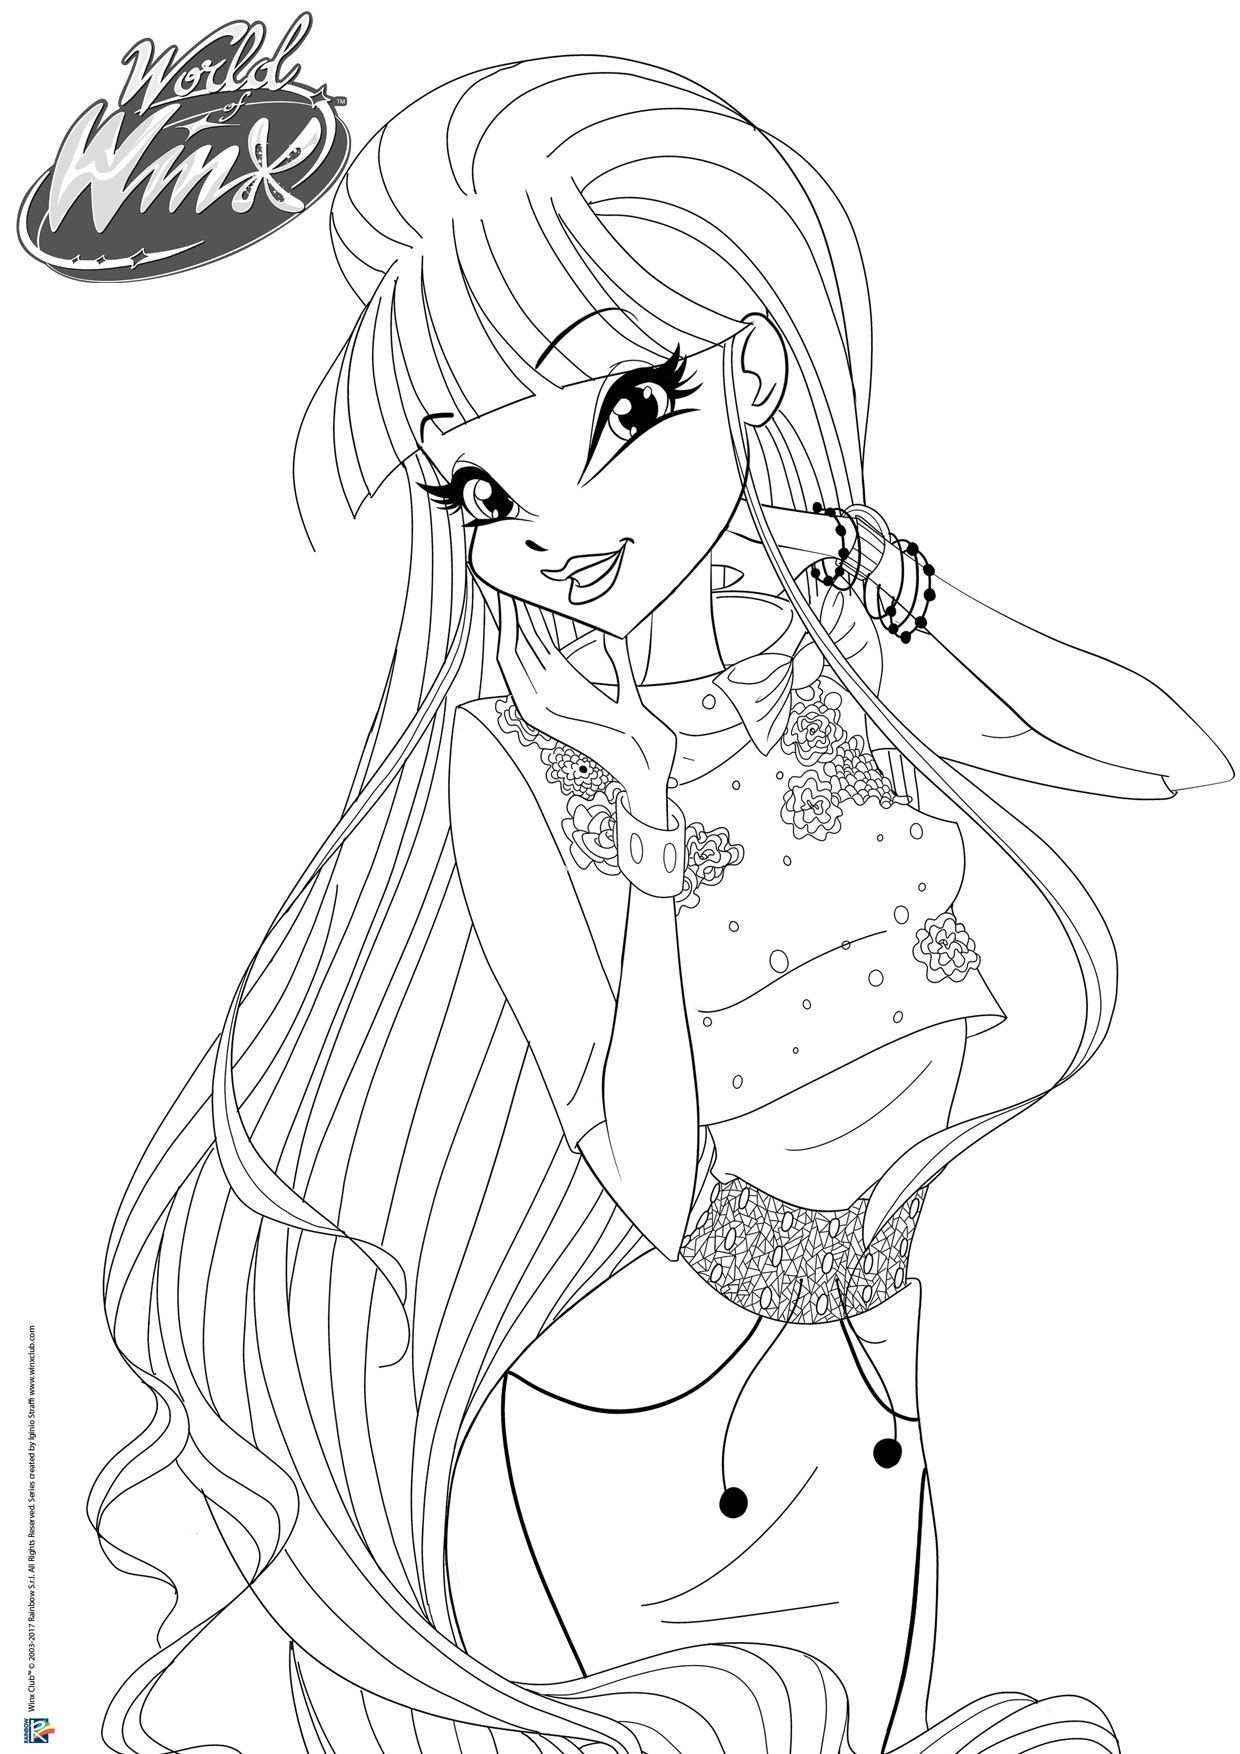 Pin By Mariam789 On Winx Club With Images Cartoon Coloring Pages